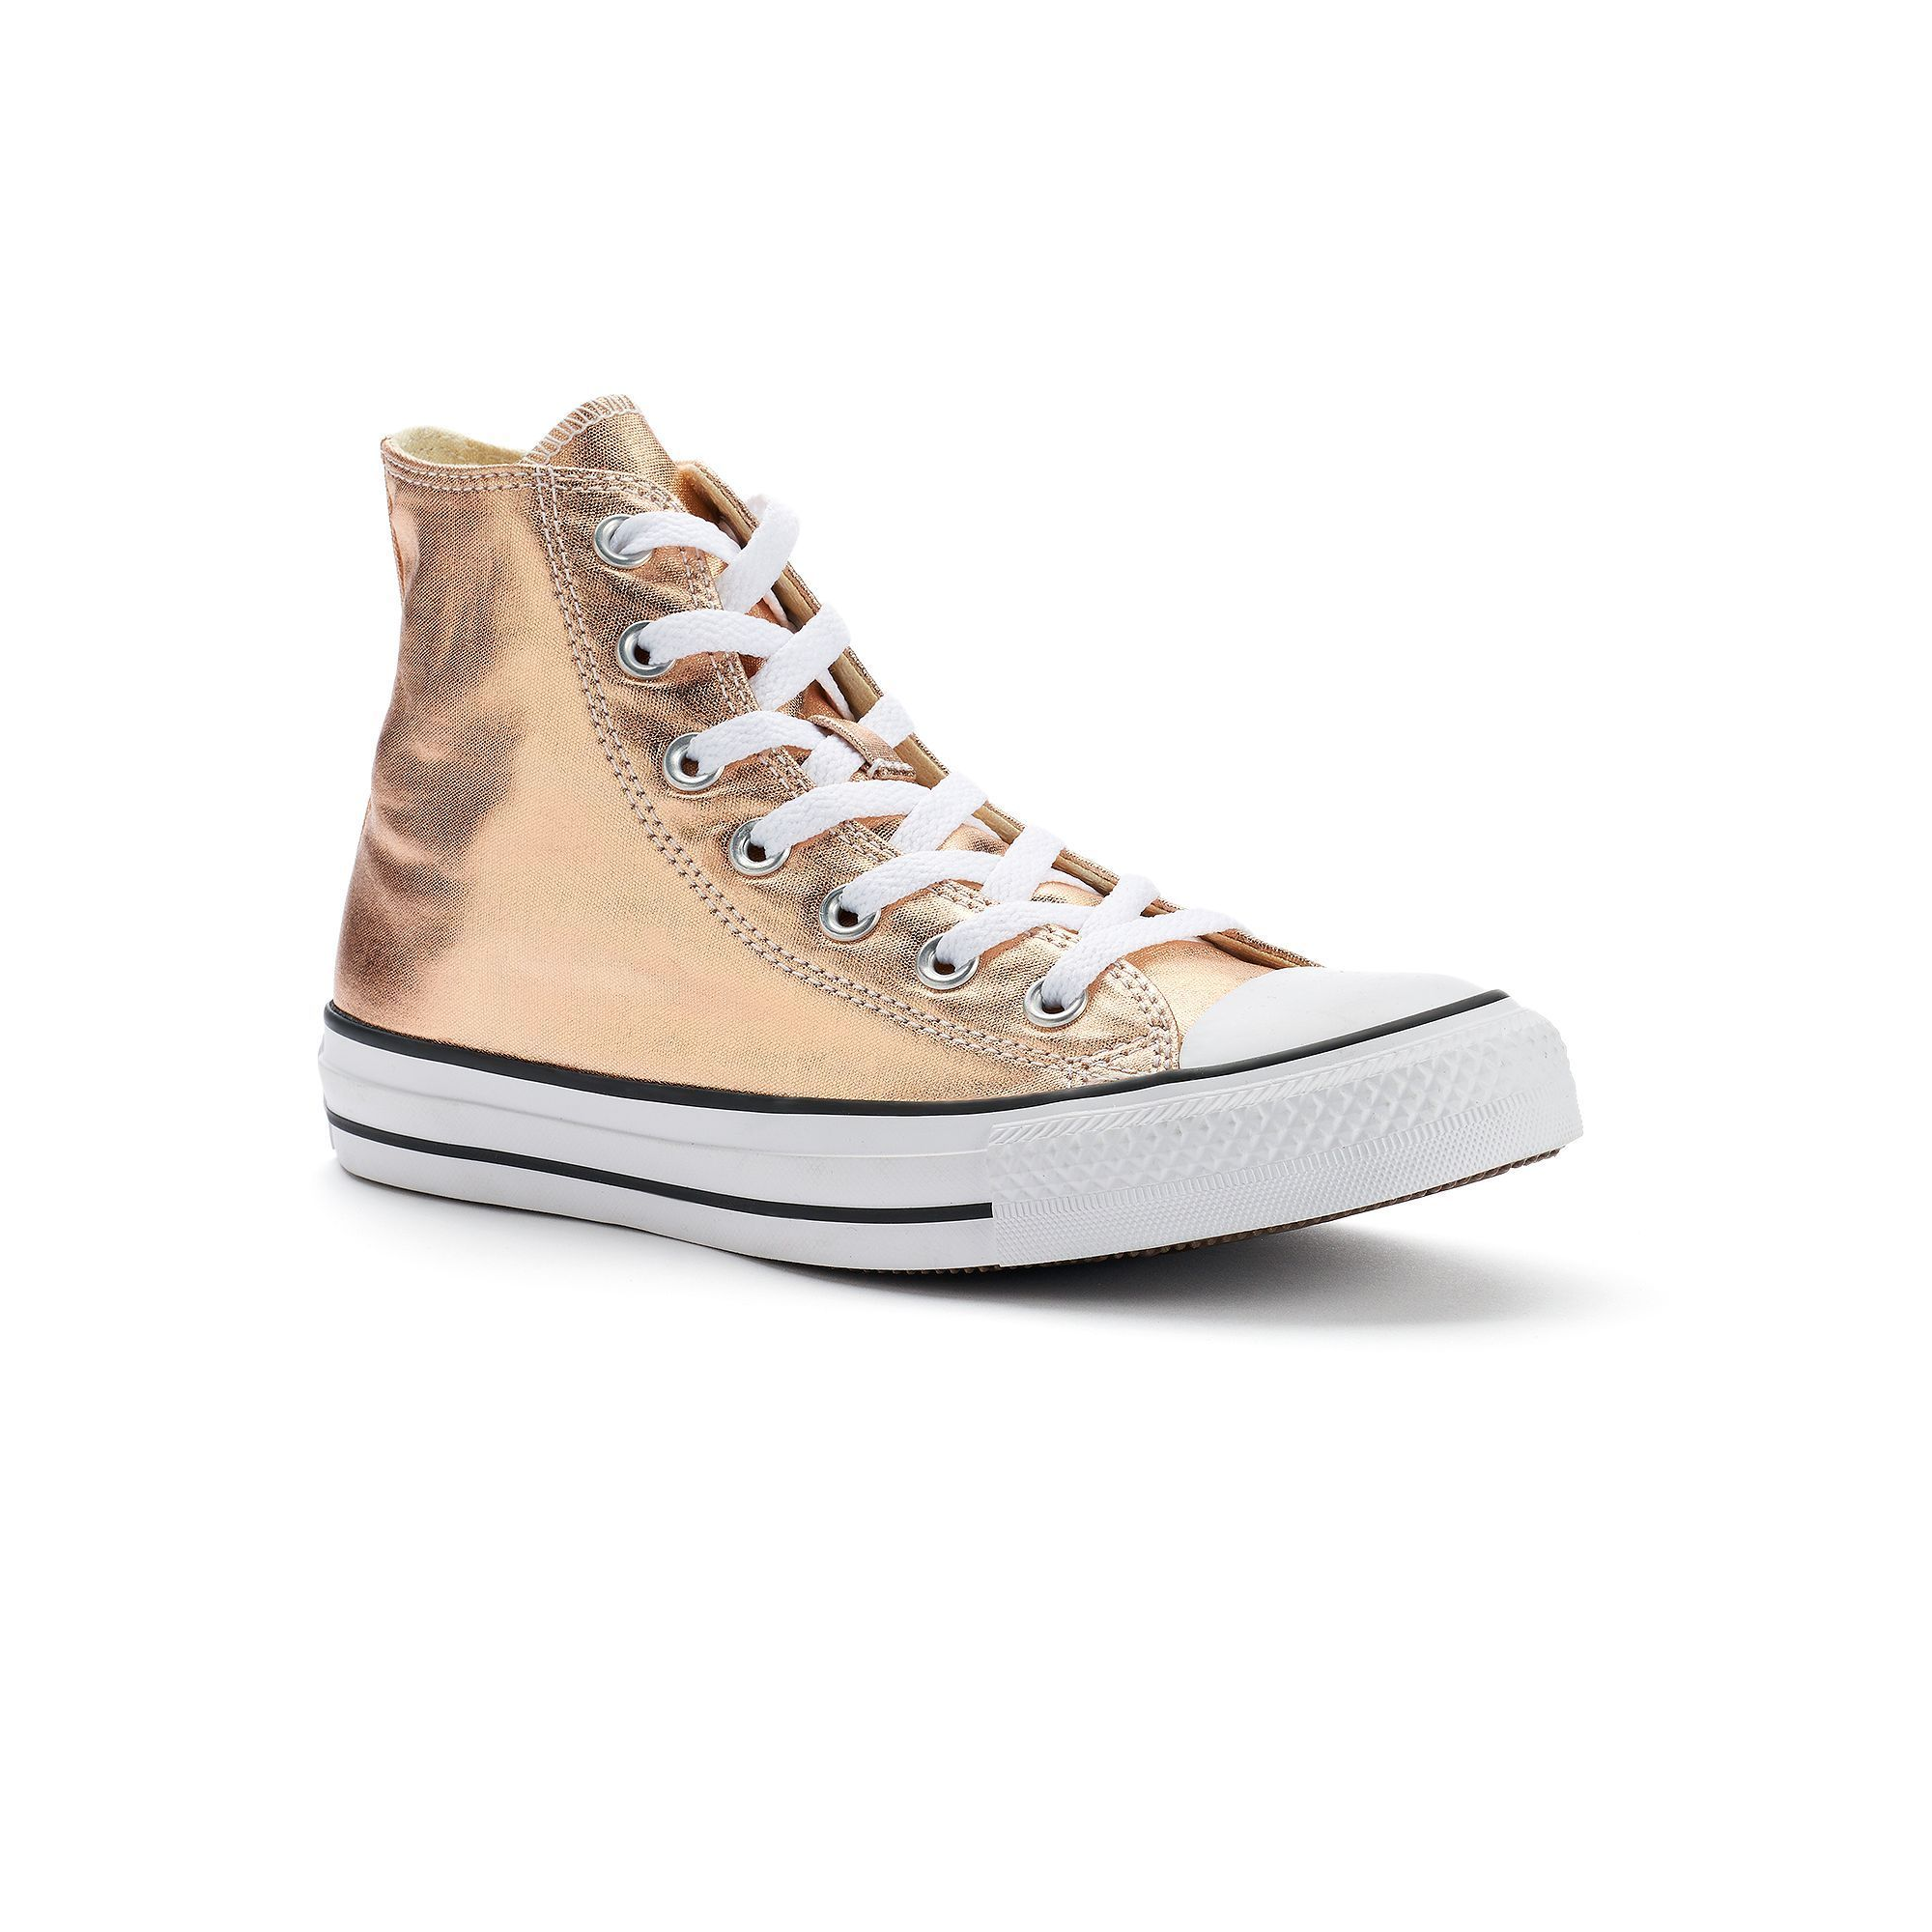 c50bcf2c5f1065 Adult Converse Chuck Taylor All Star Metallic High-Top Sneakers ...